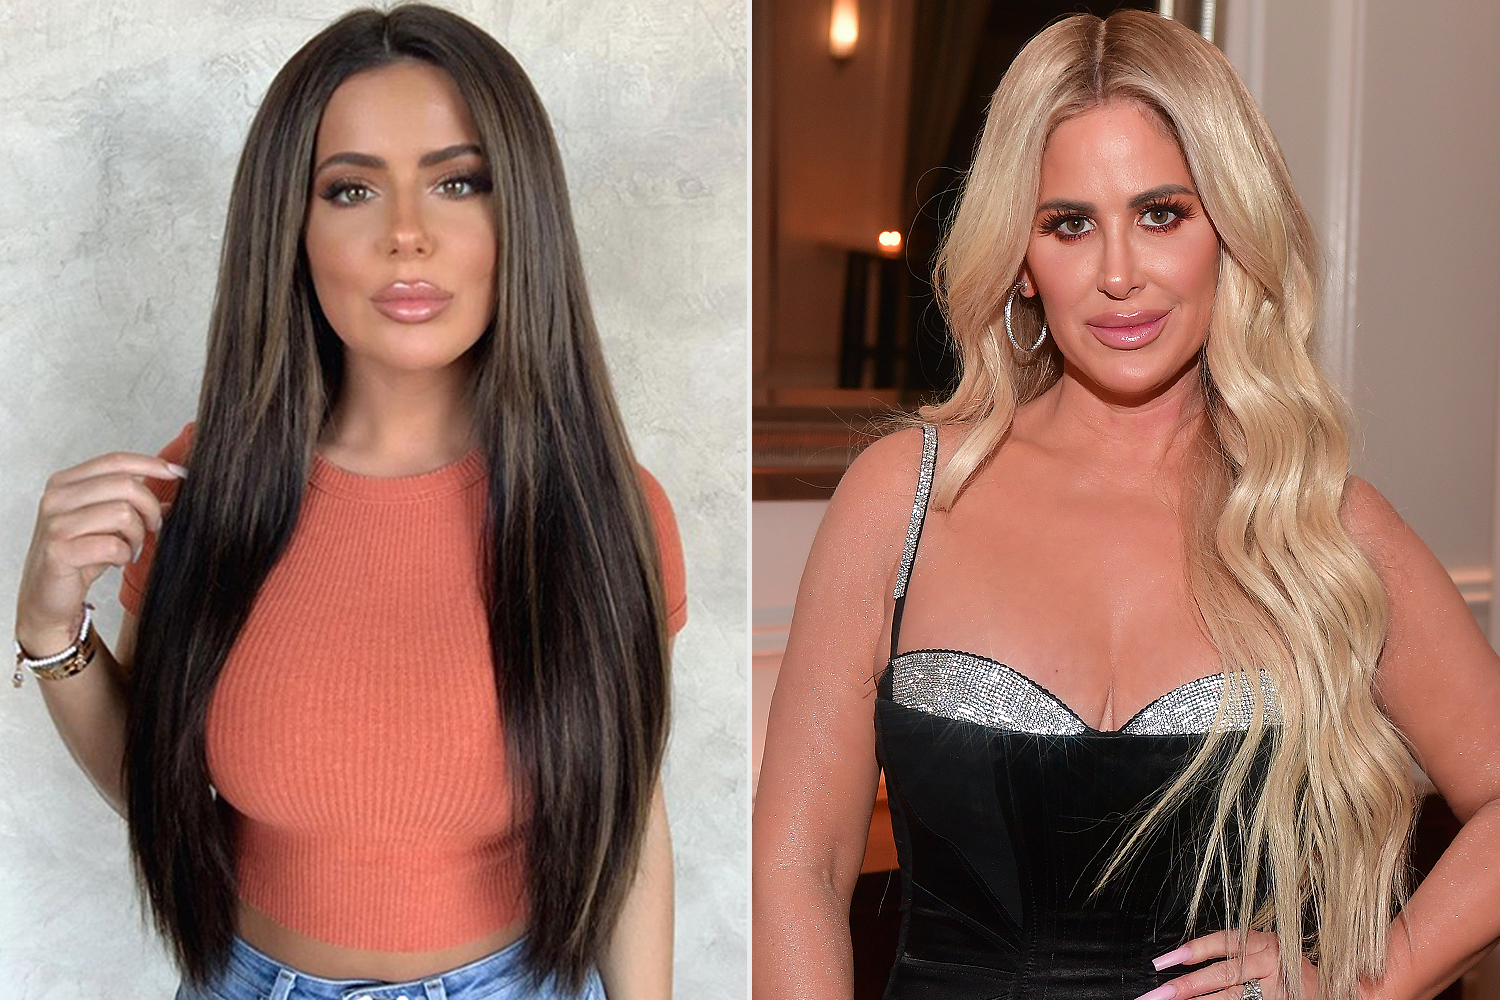 Brielle Biermann, Kim Zolciak Biermann